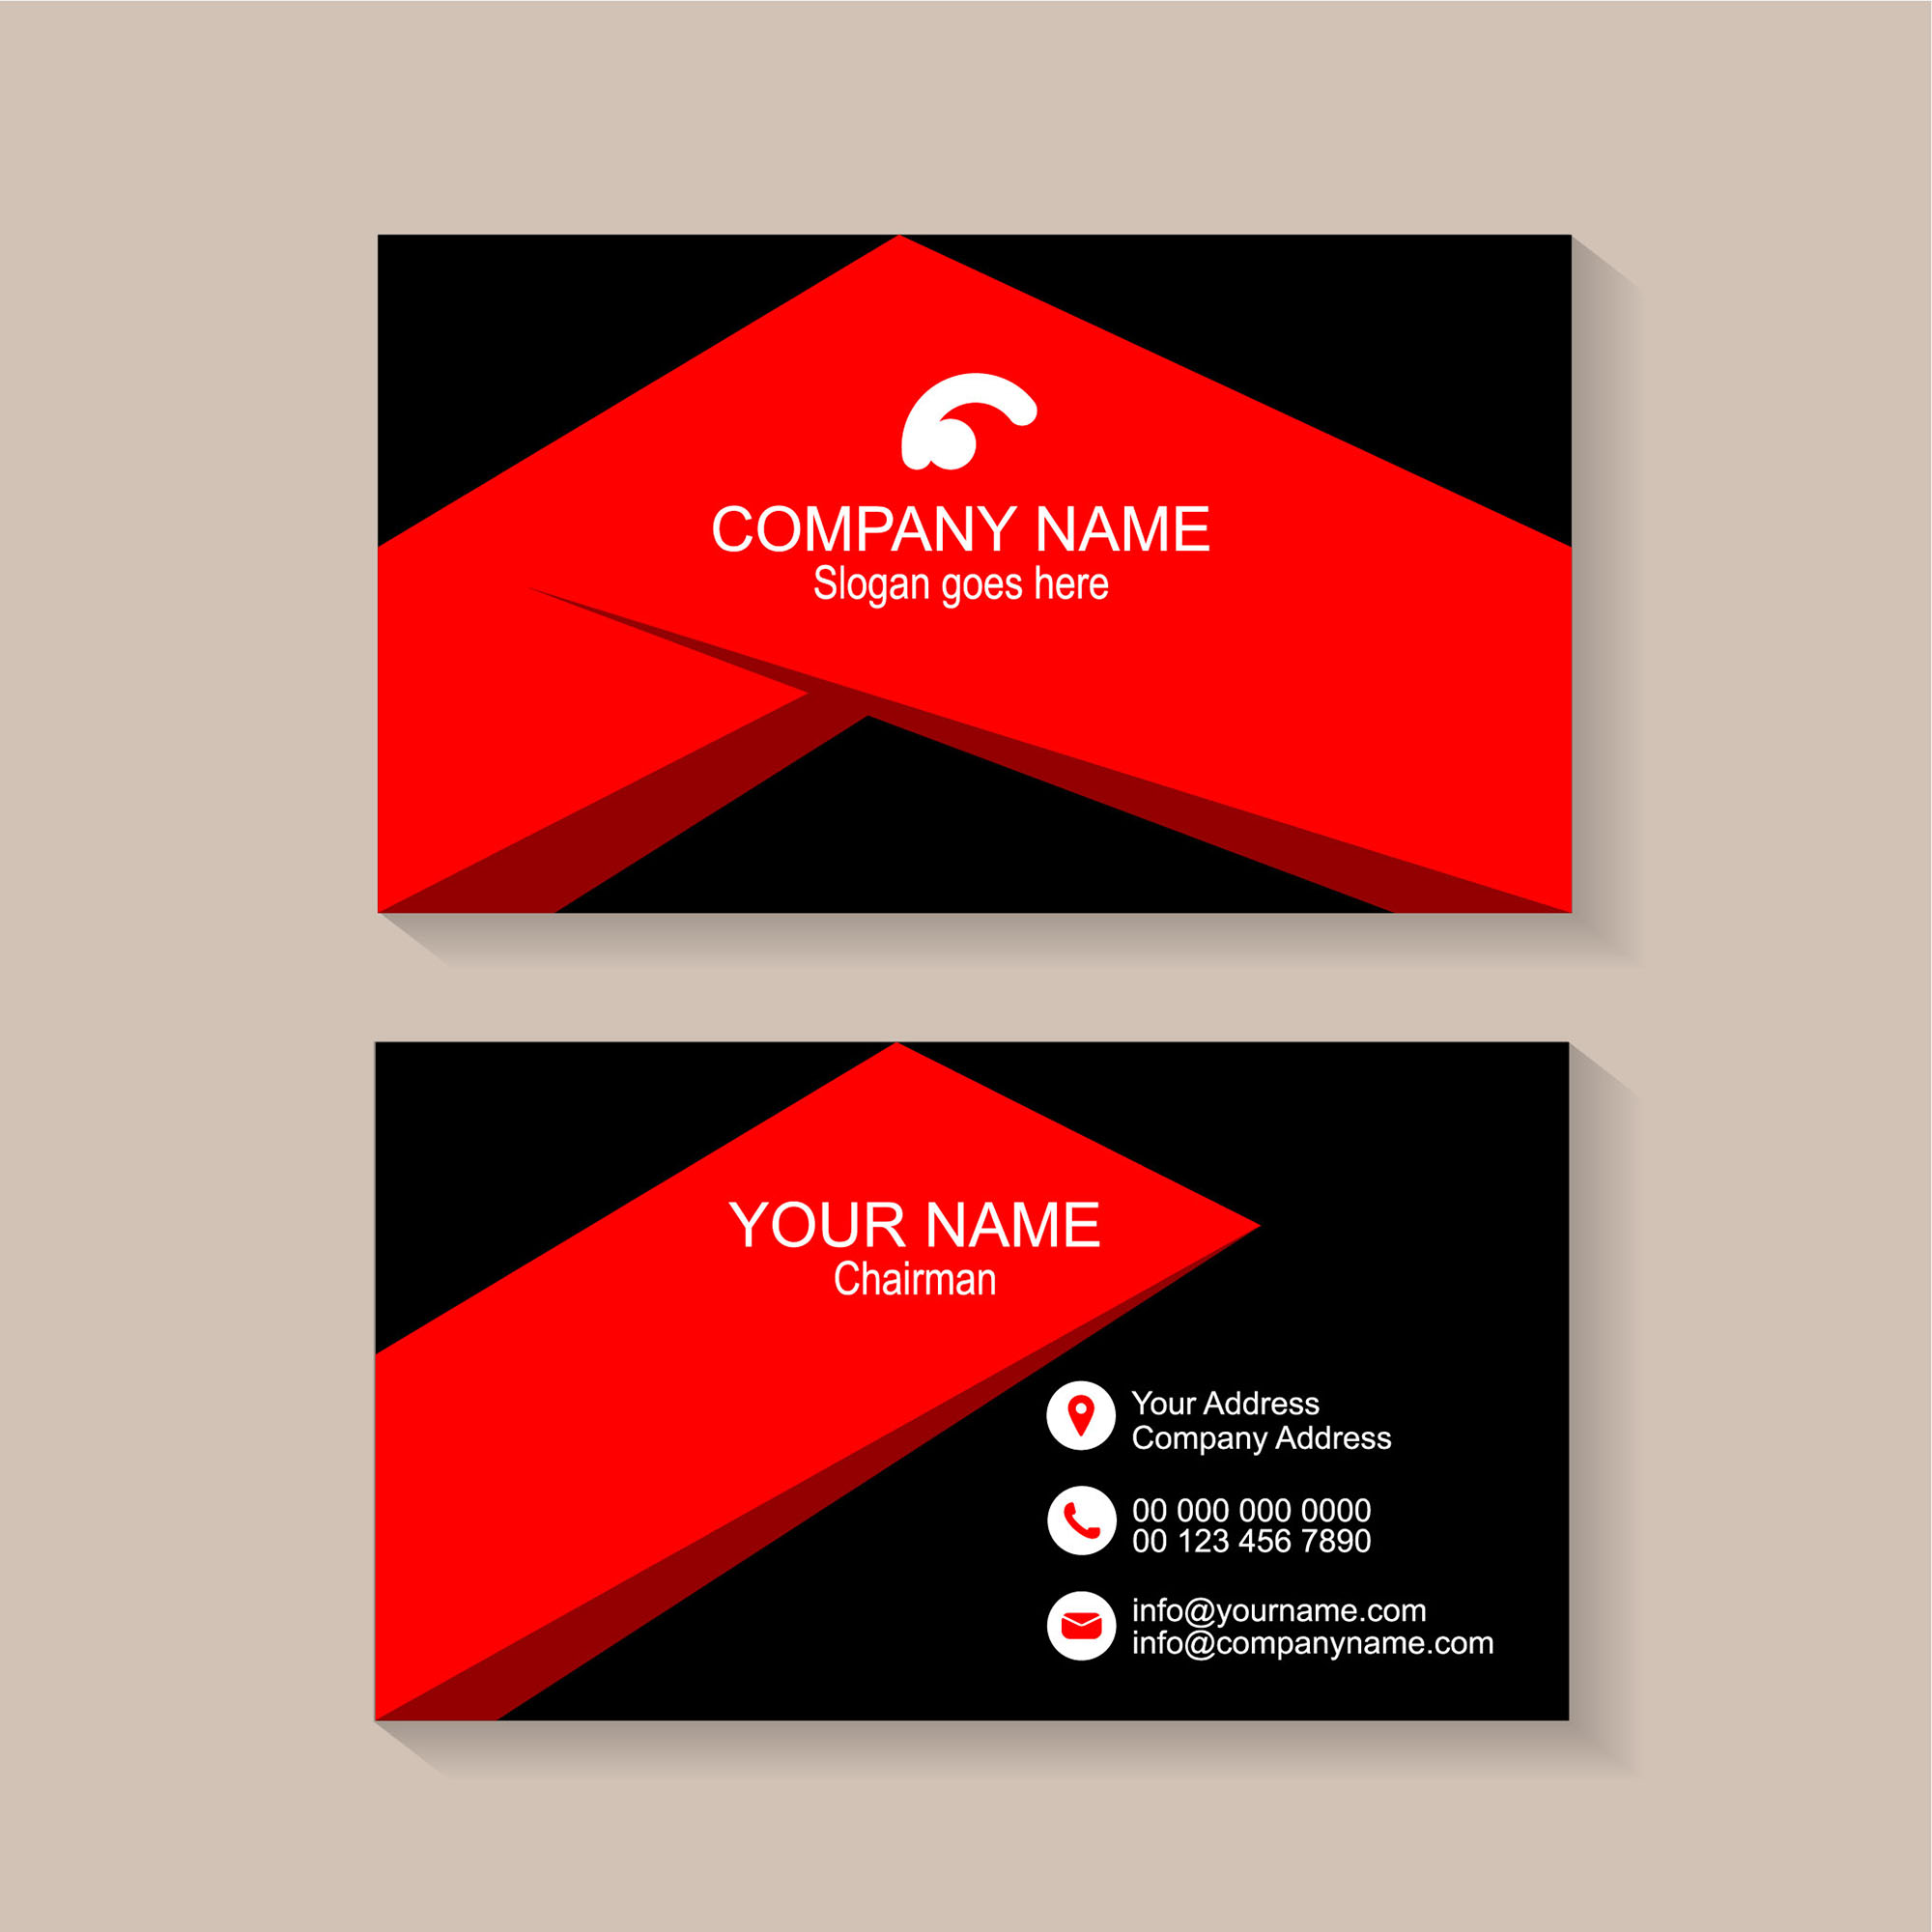 Business card template design free download wisxi business card business cards business card design business card template design templates flashek